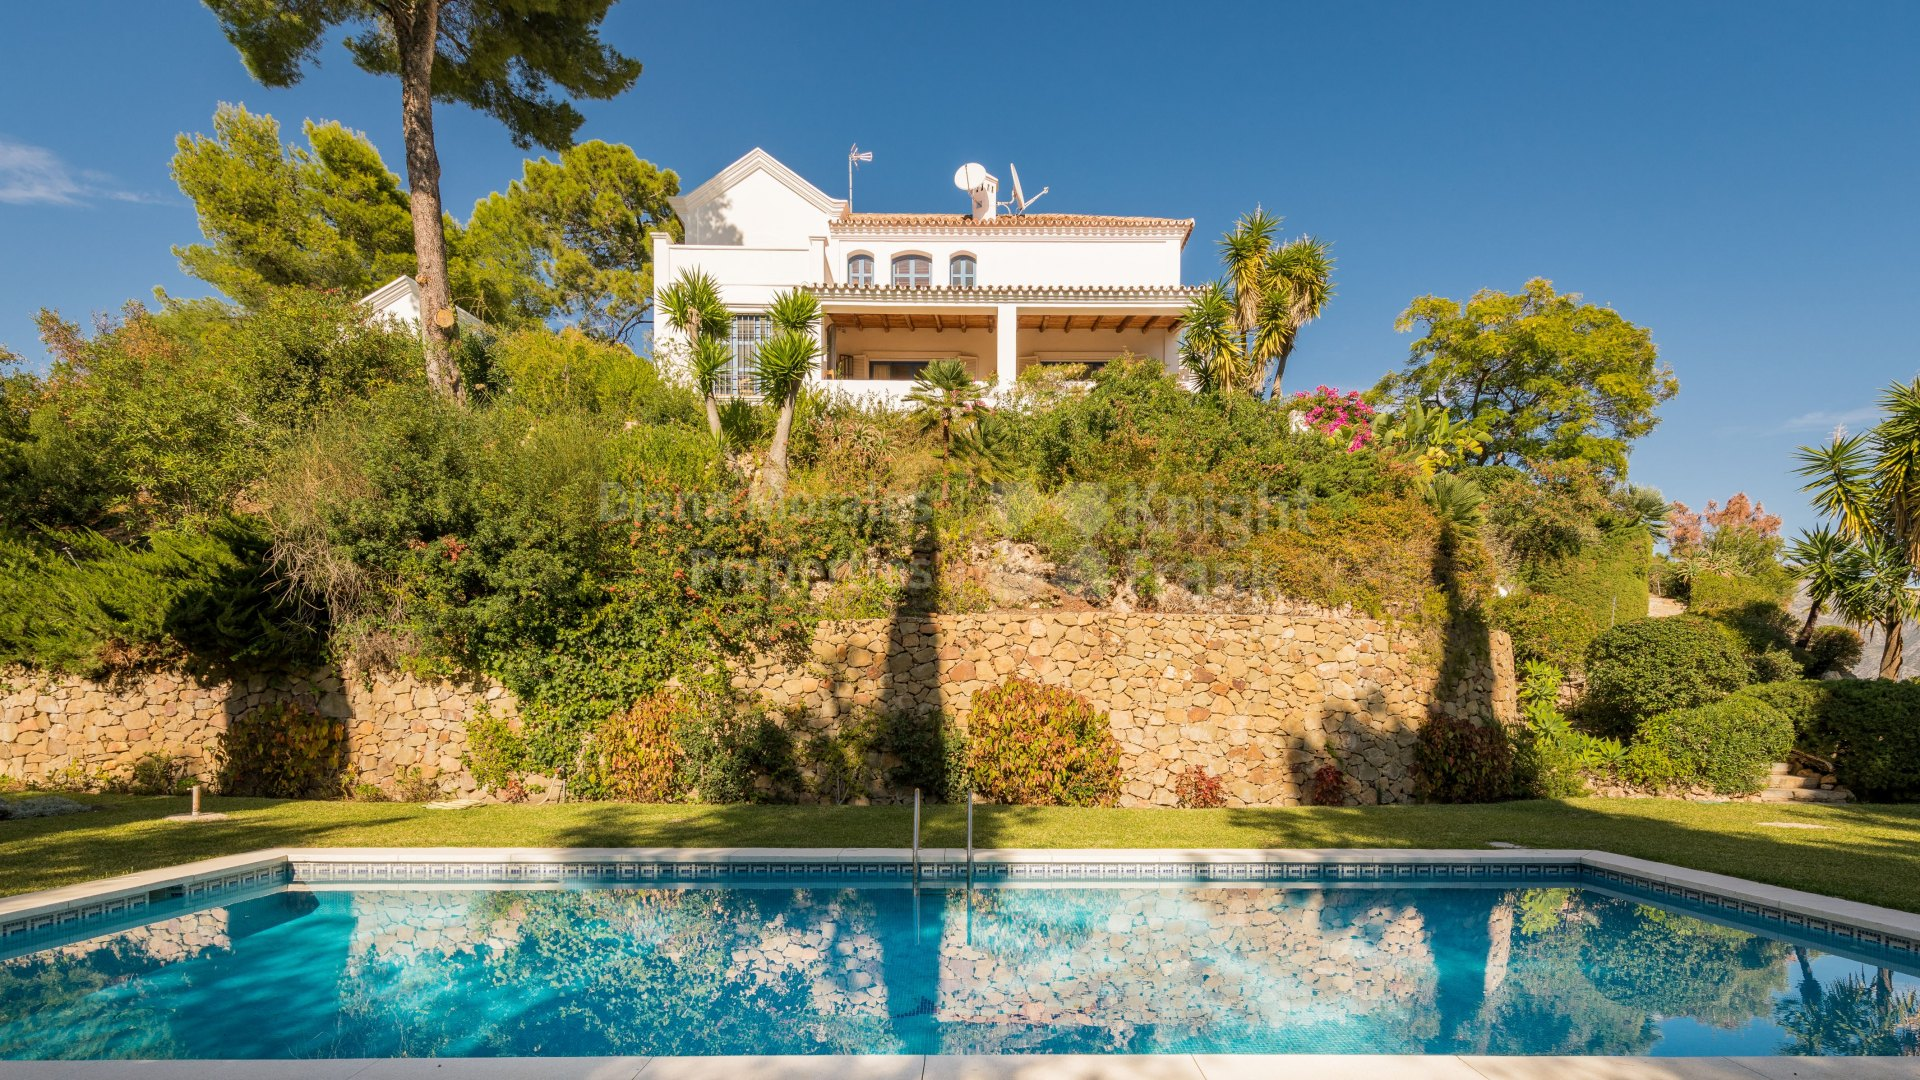 El Madroñal, Charming villa with panoramic views